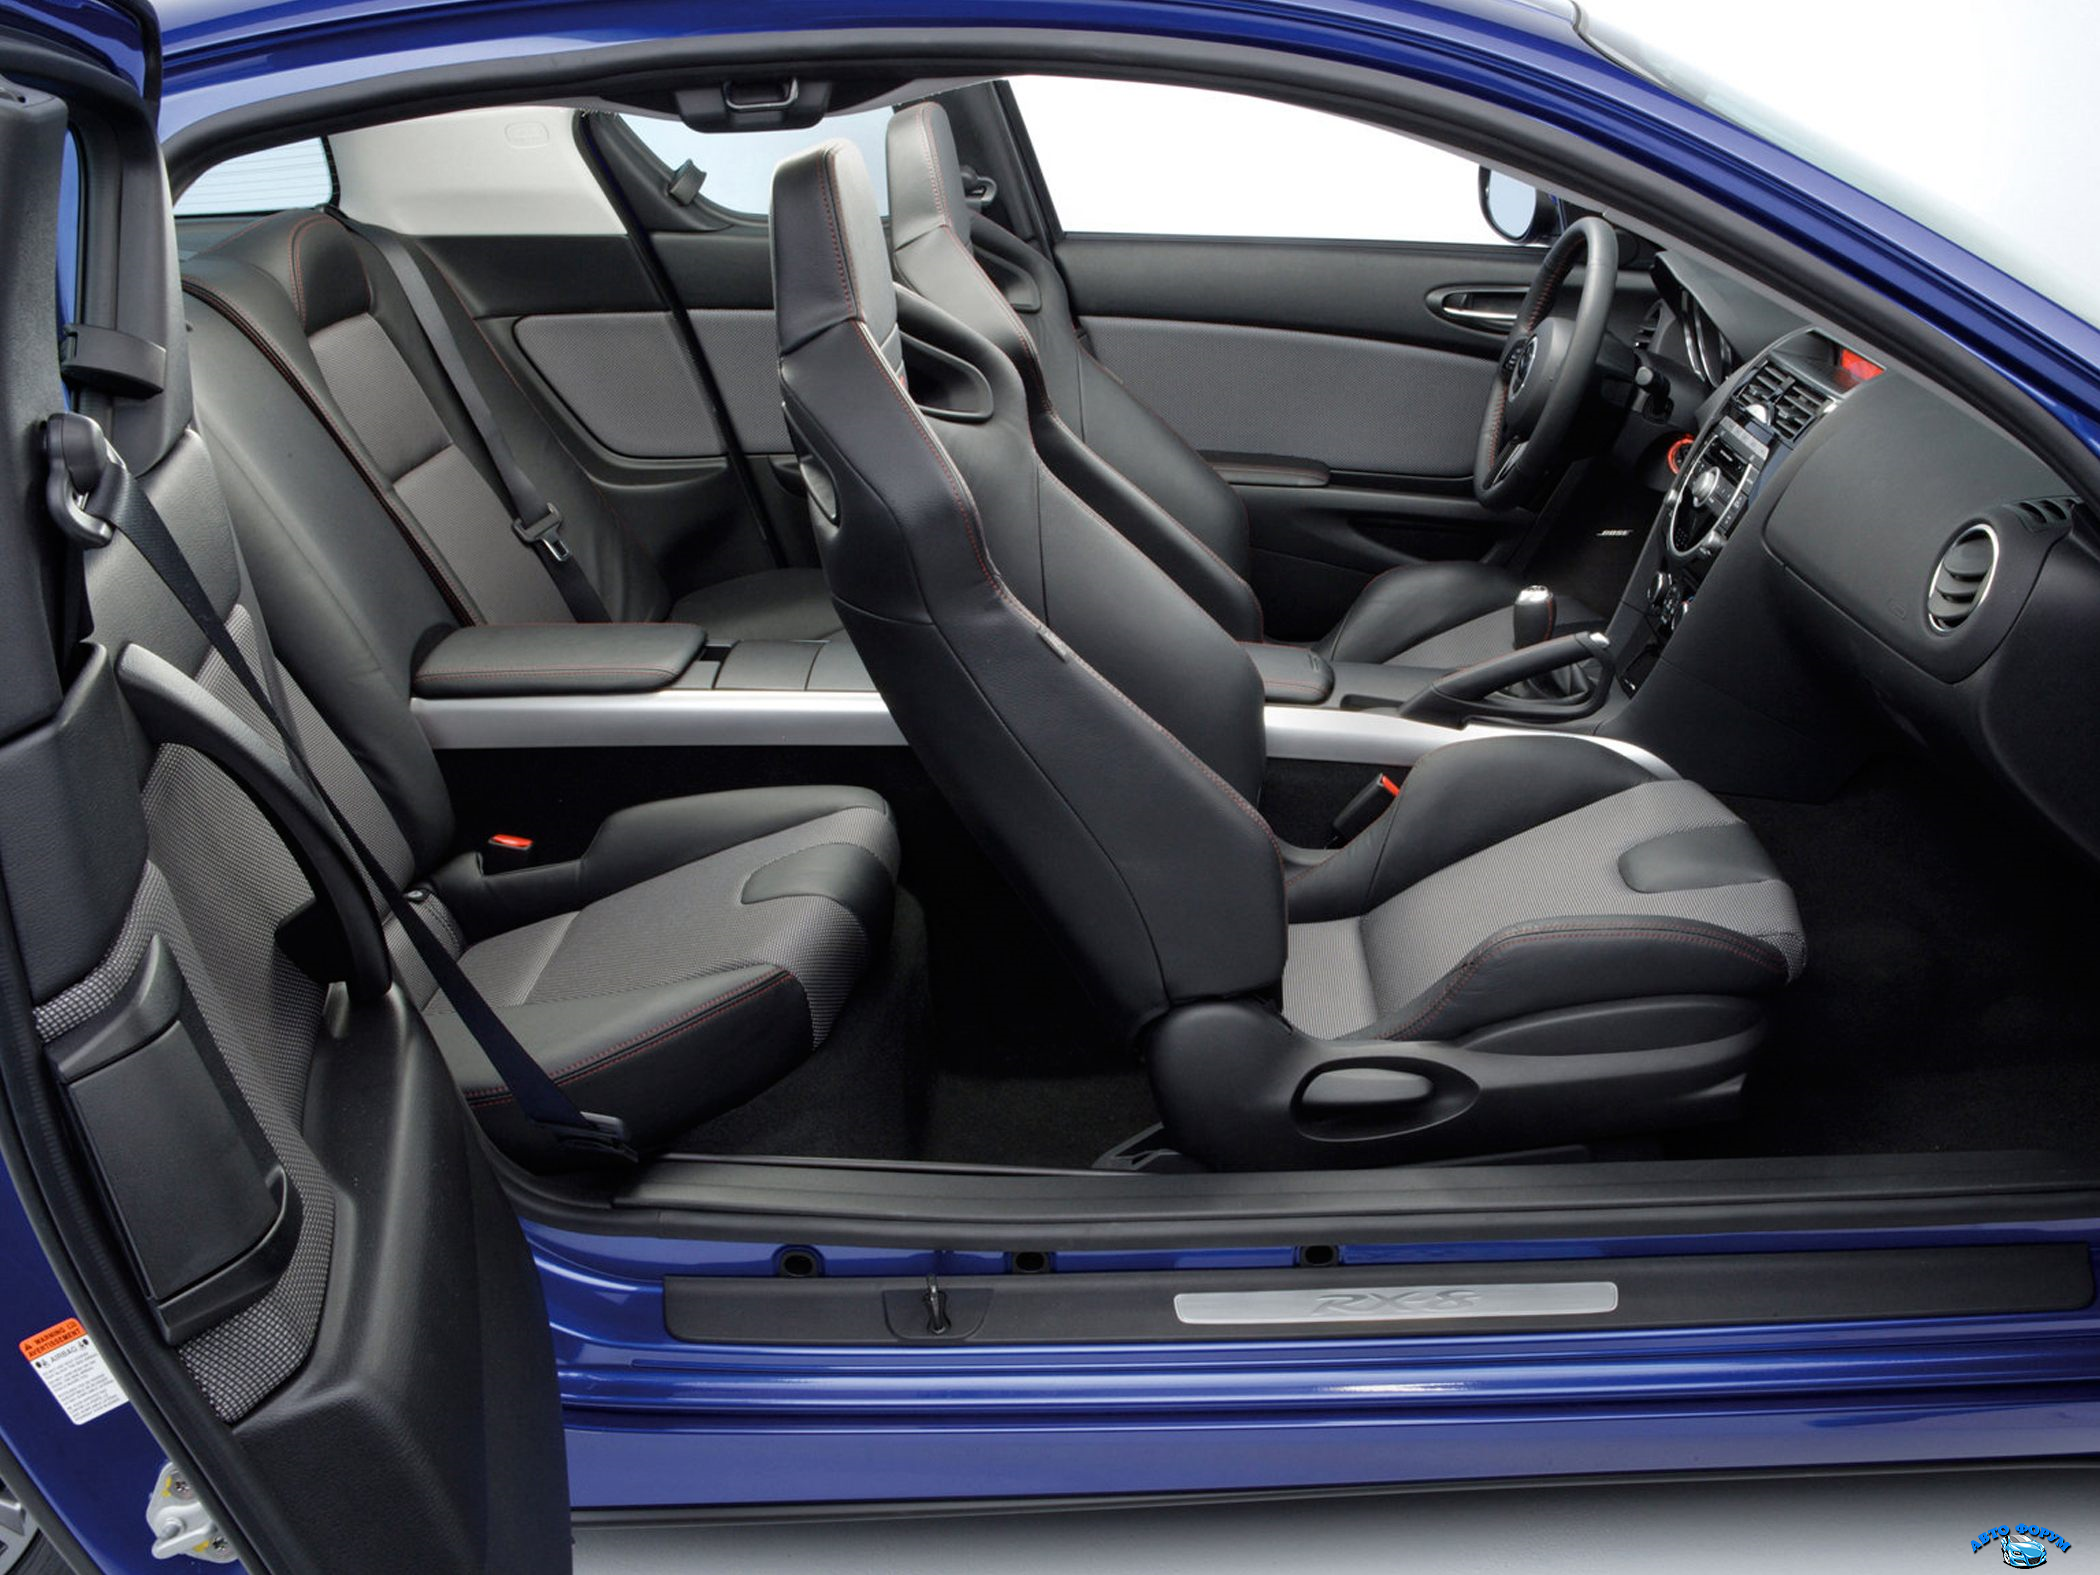 2010-Mazda-RX-8-Coupe-Hatchback-Sport-4dr-Coupe-Interior-1.png